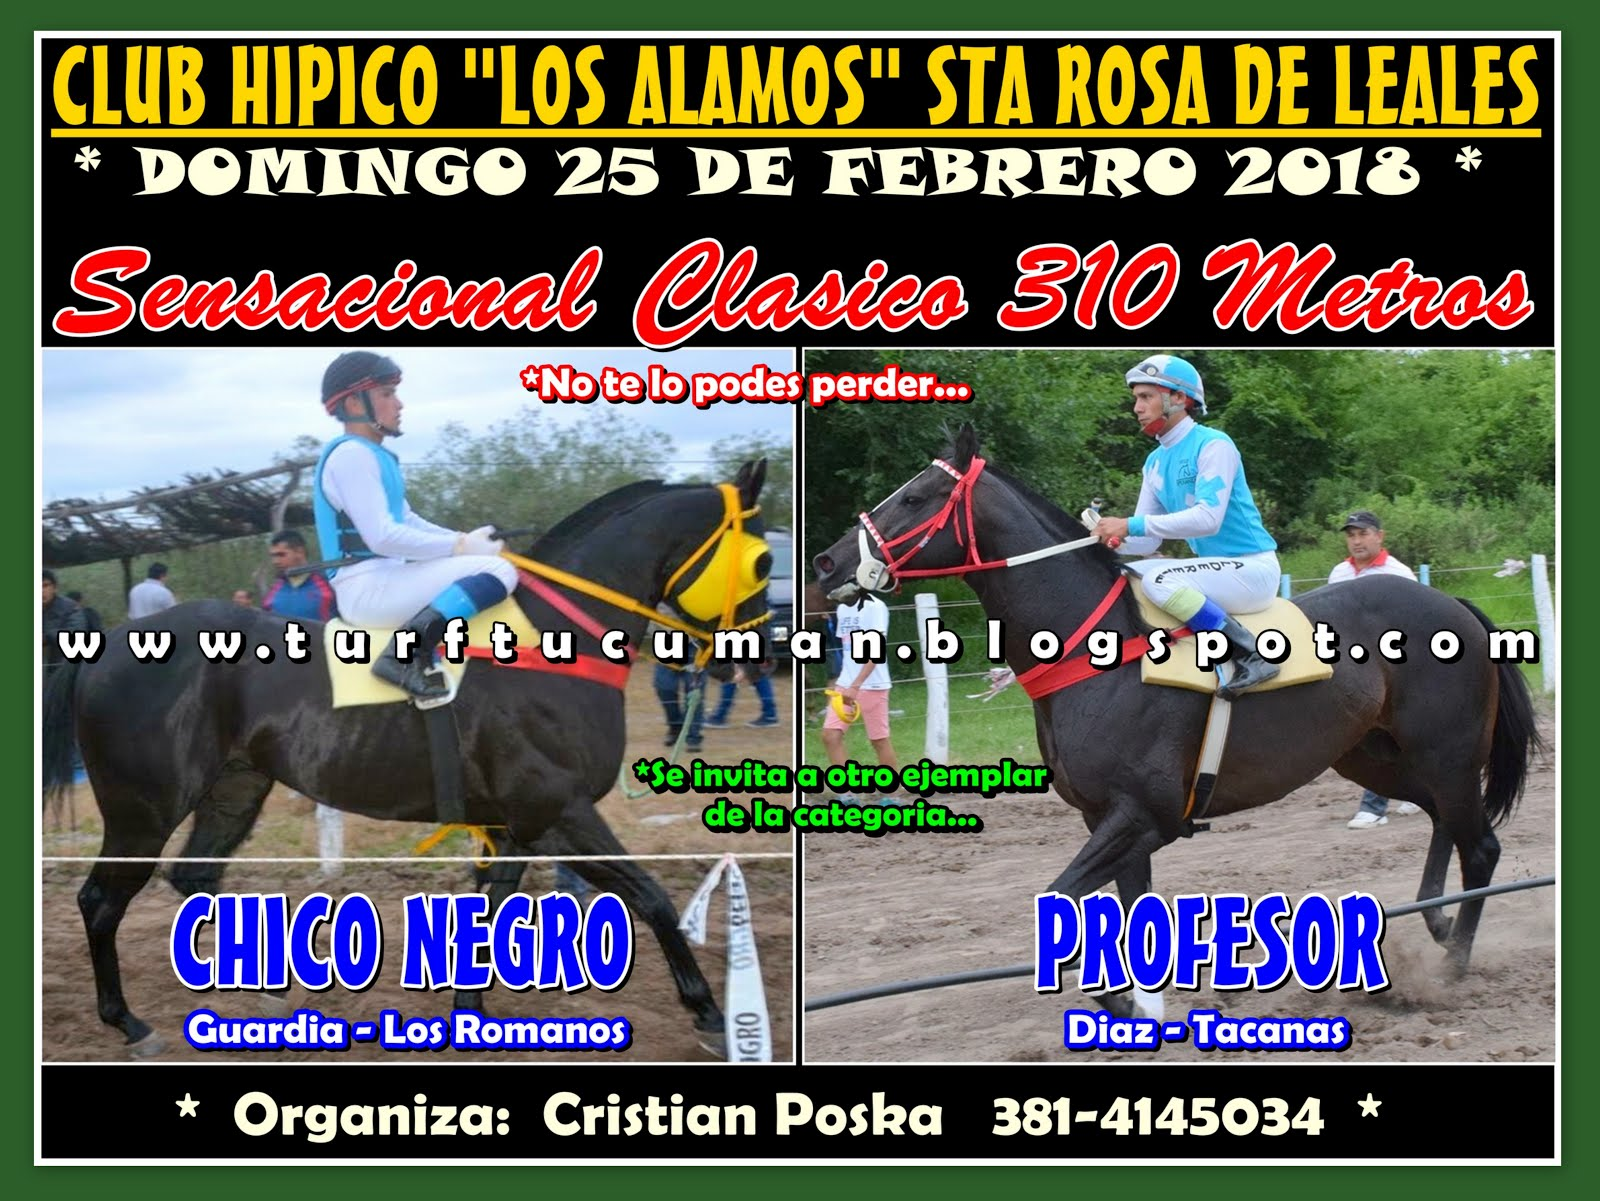 CHICO NEGRO VS PROFESOR